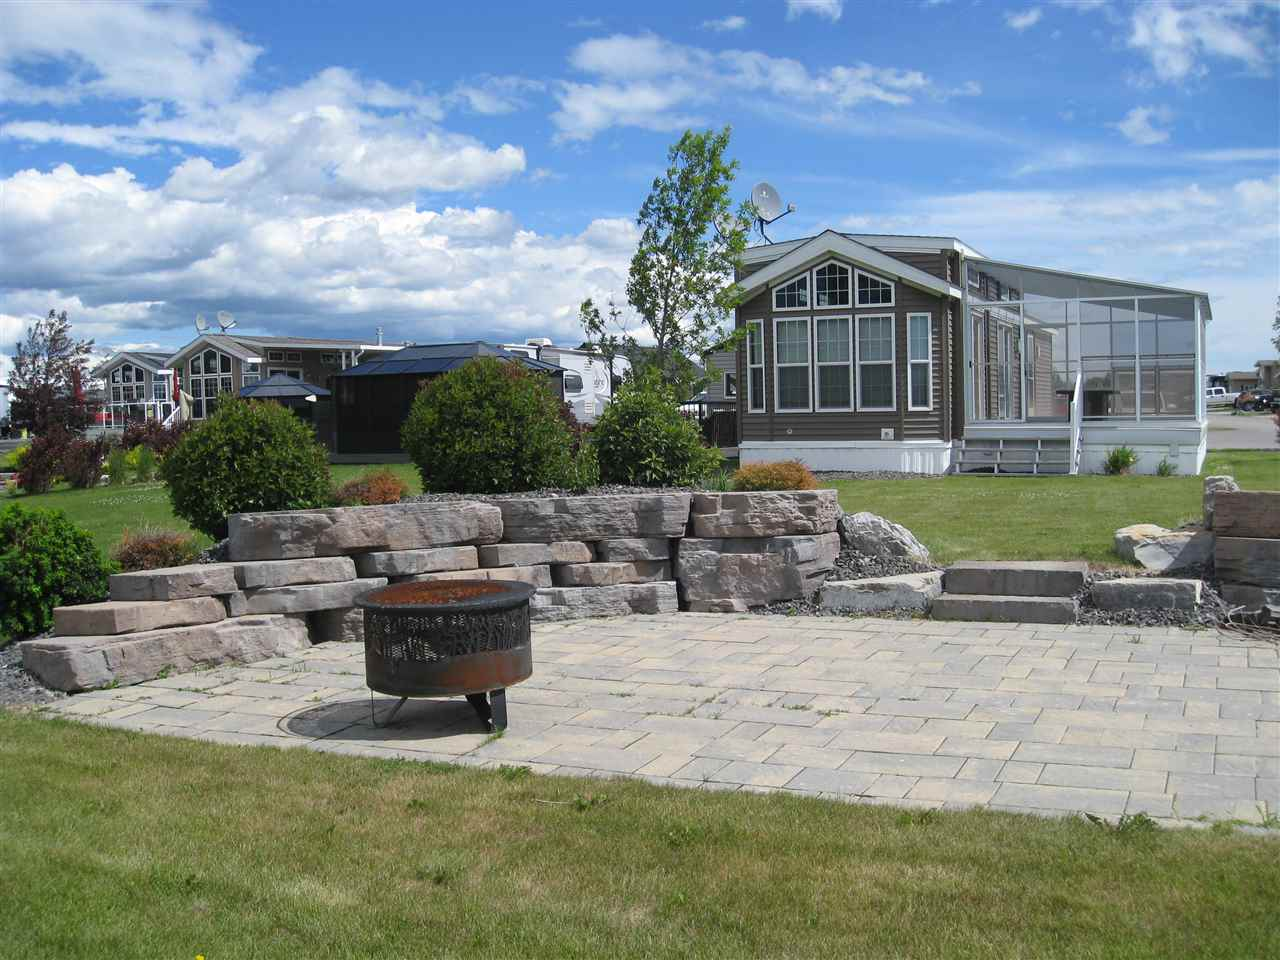 MLS® listing #E4153181 for sale located at 229 53126 Rge Rd 70